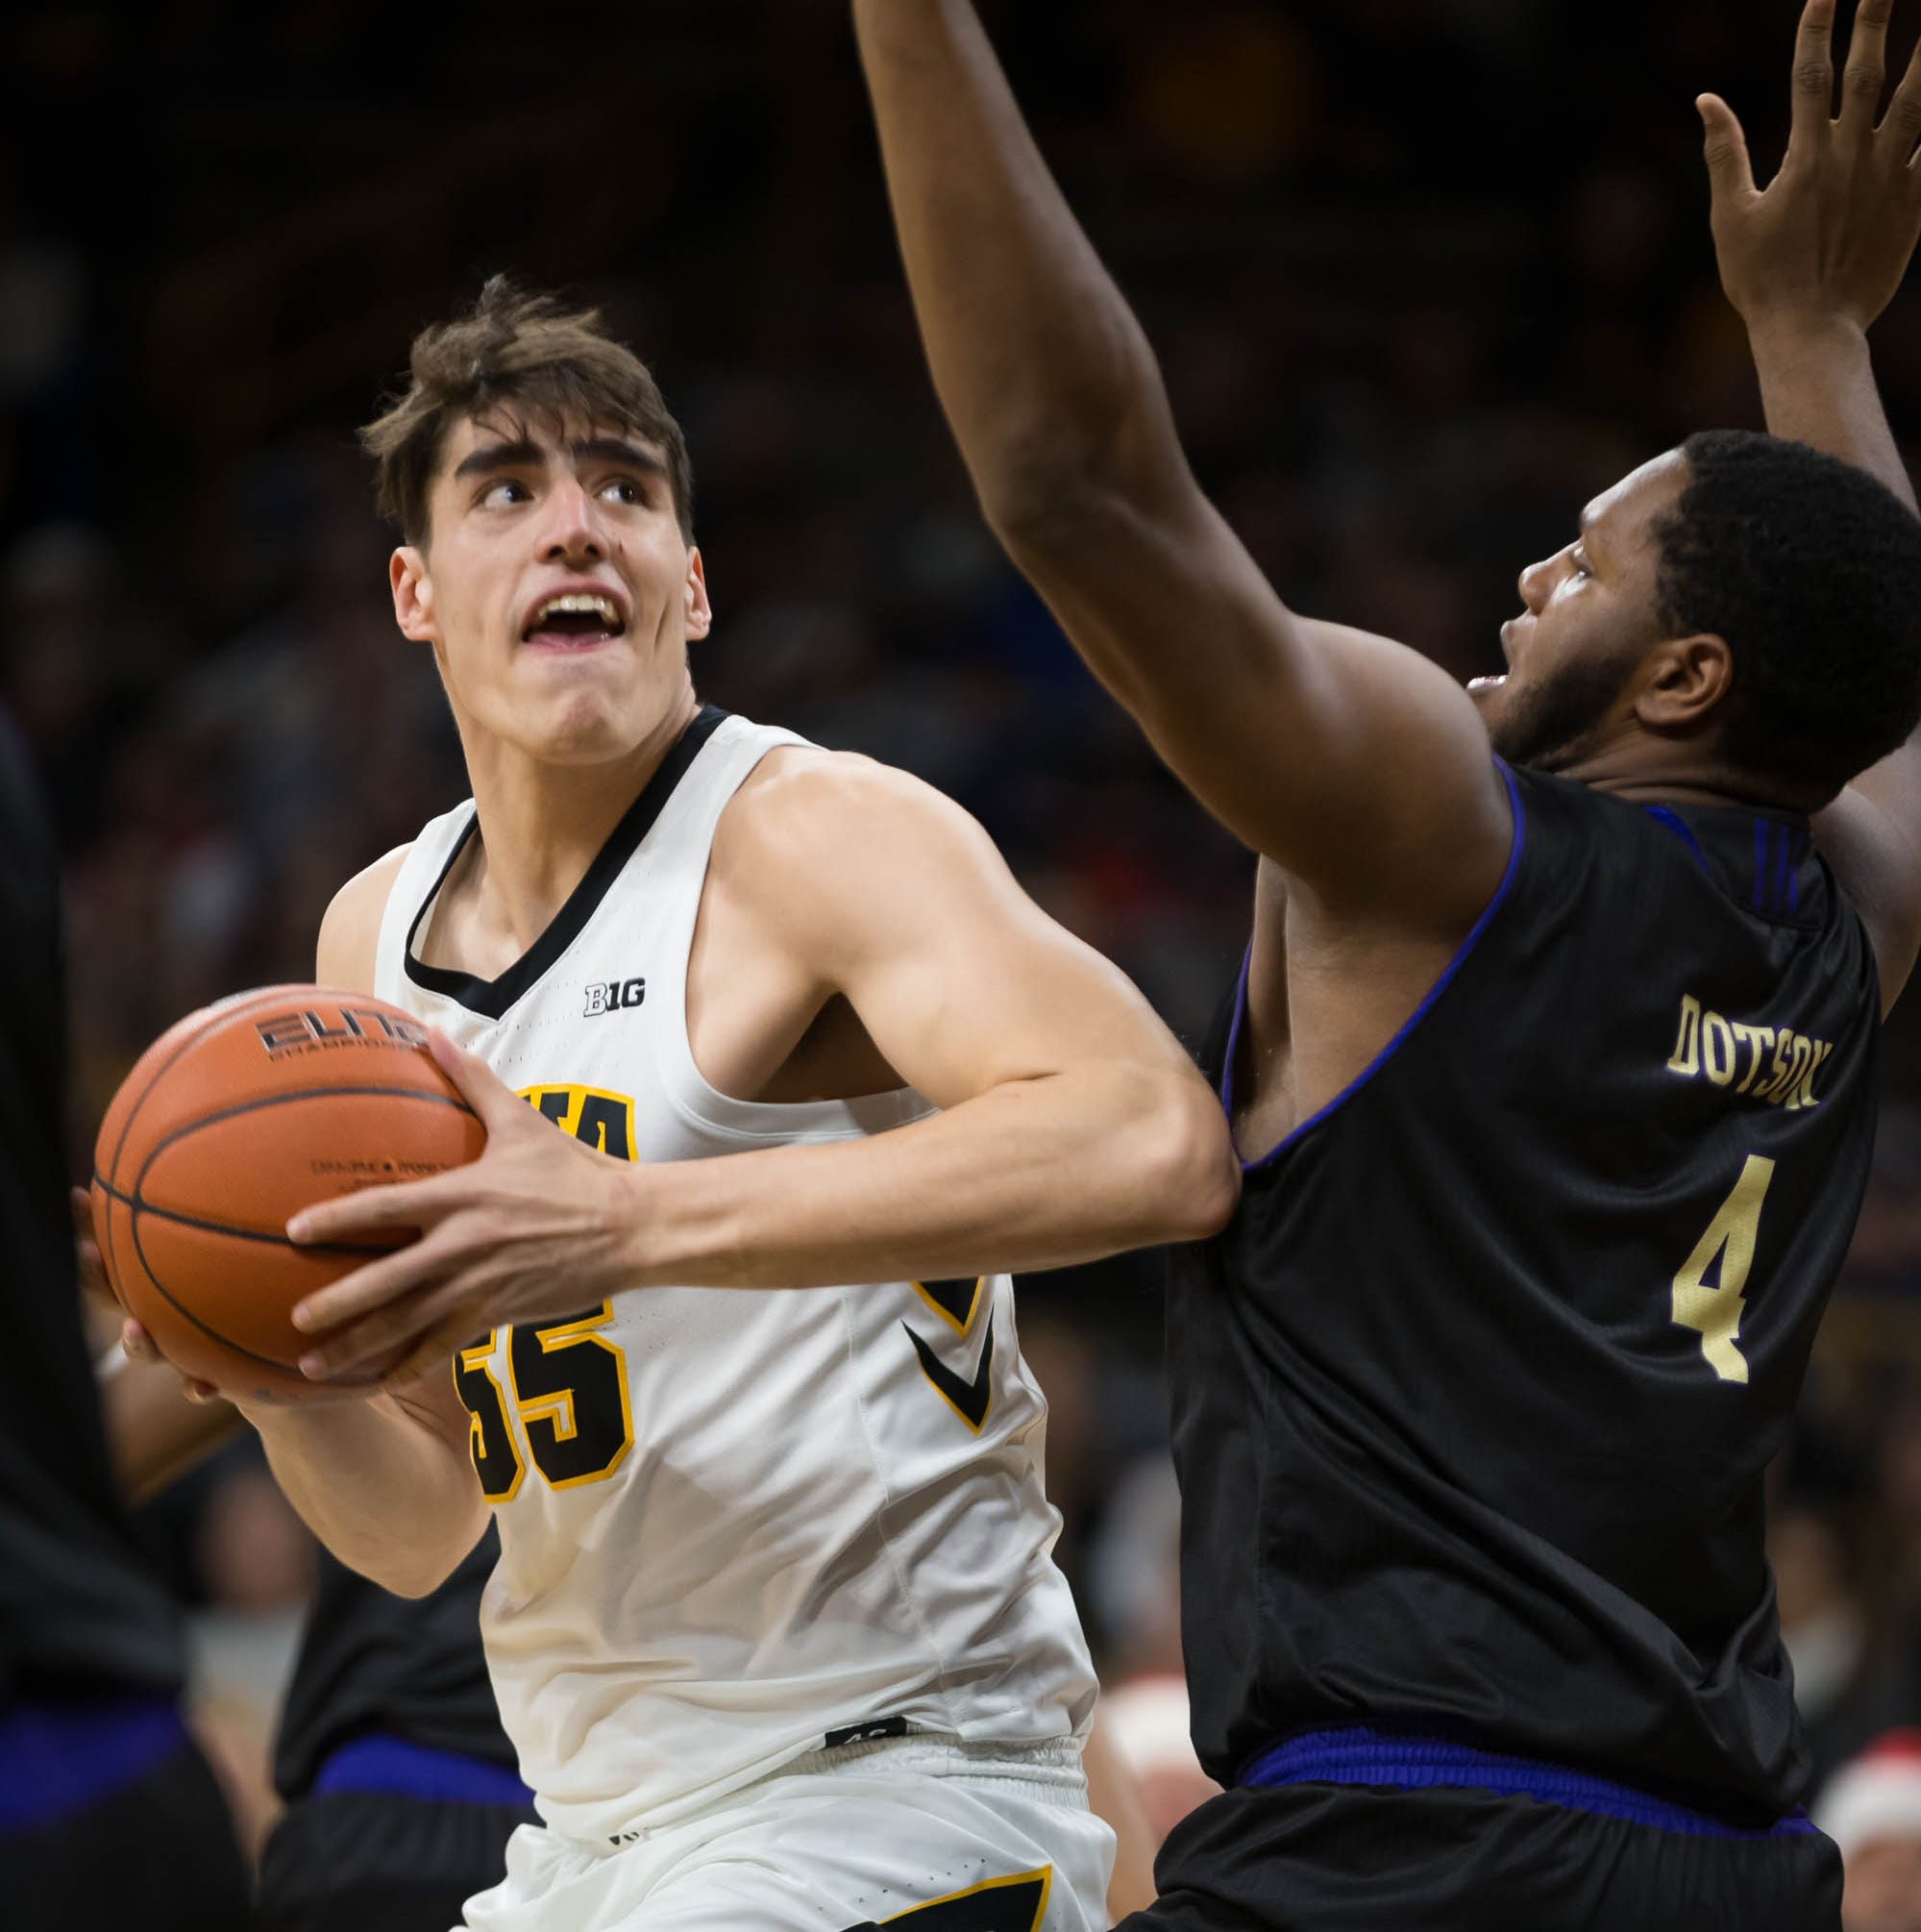 Iowa hoops takeaways: Winning streak coincides with Garza's return; an update on Cook